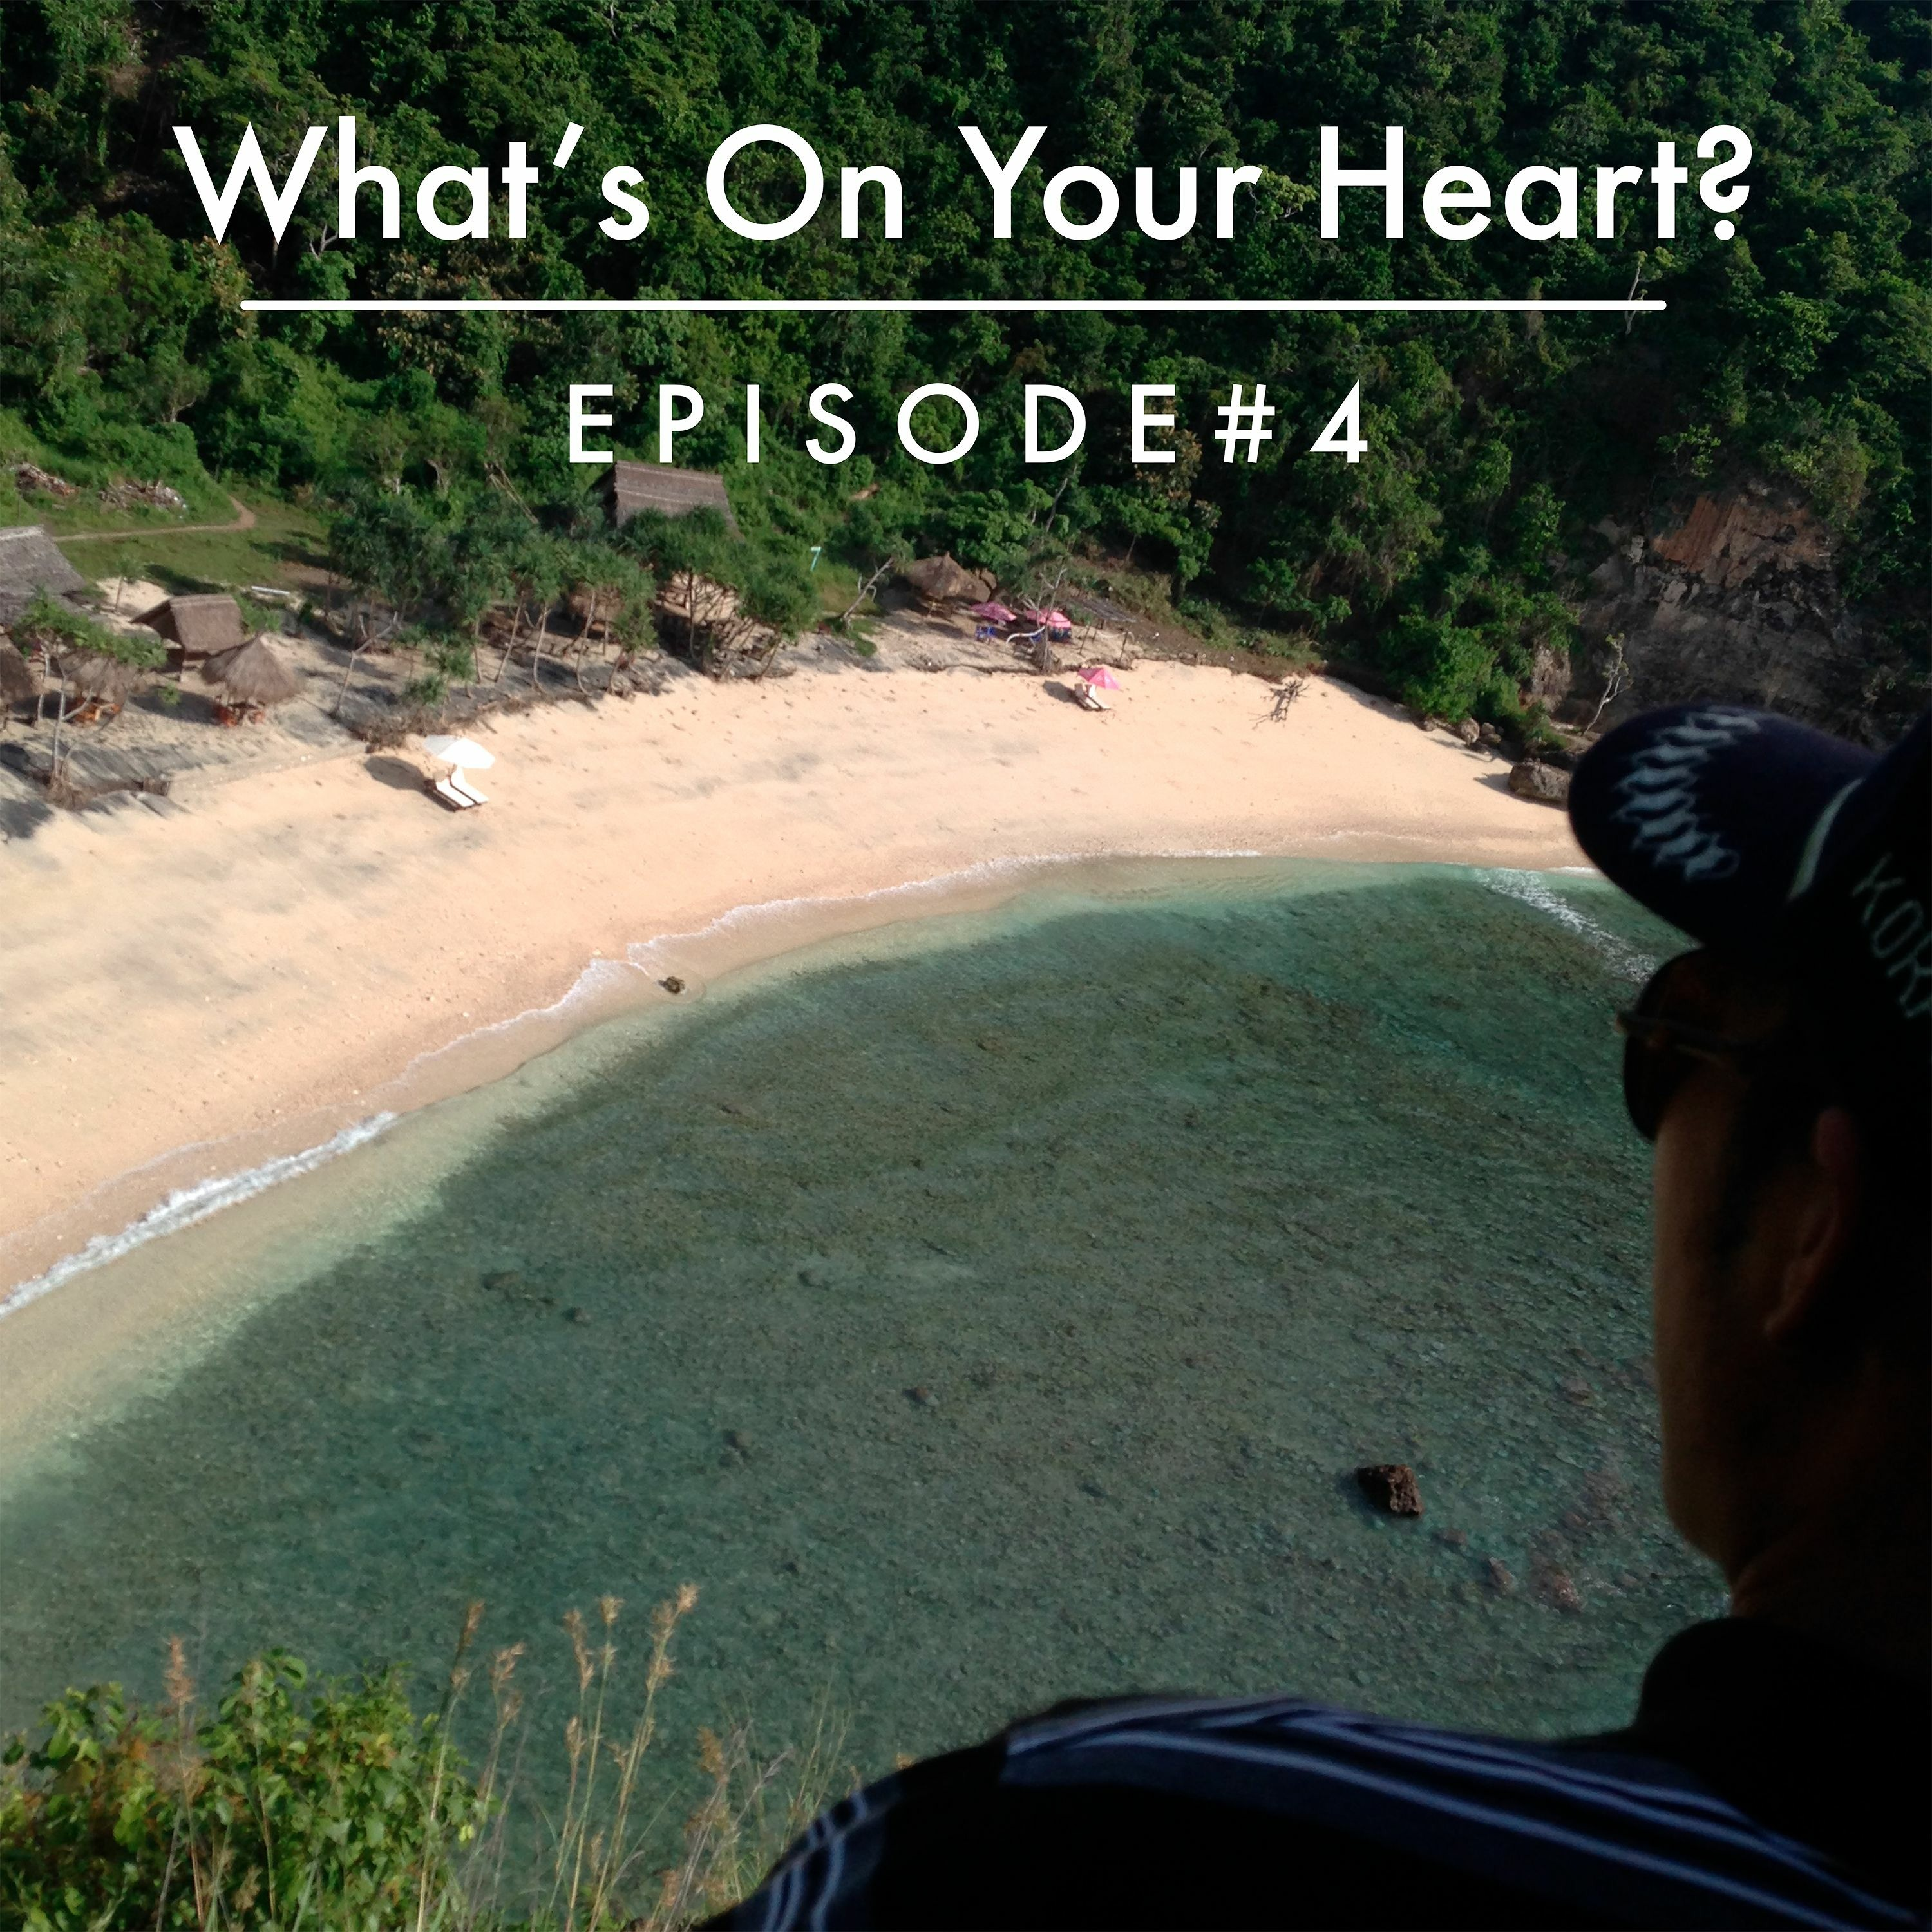 Episode 4 - What's On Your Heart?